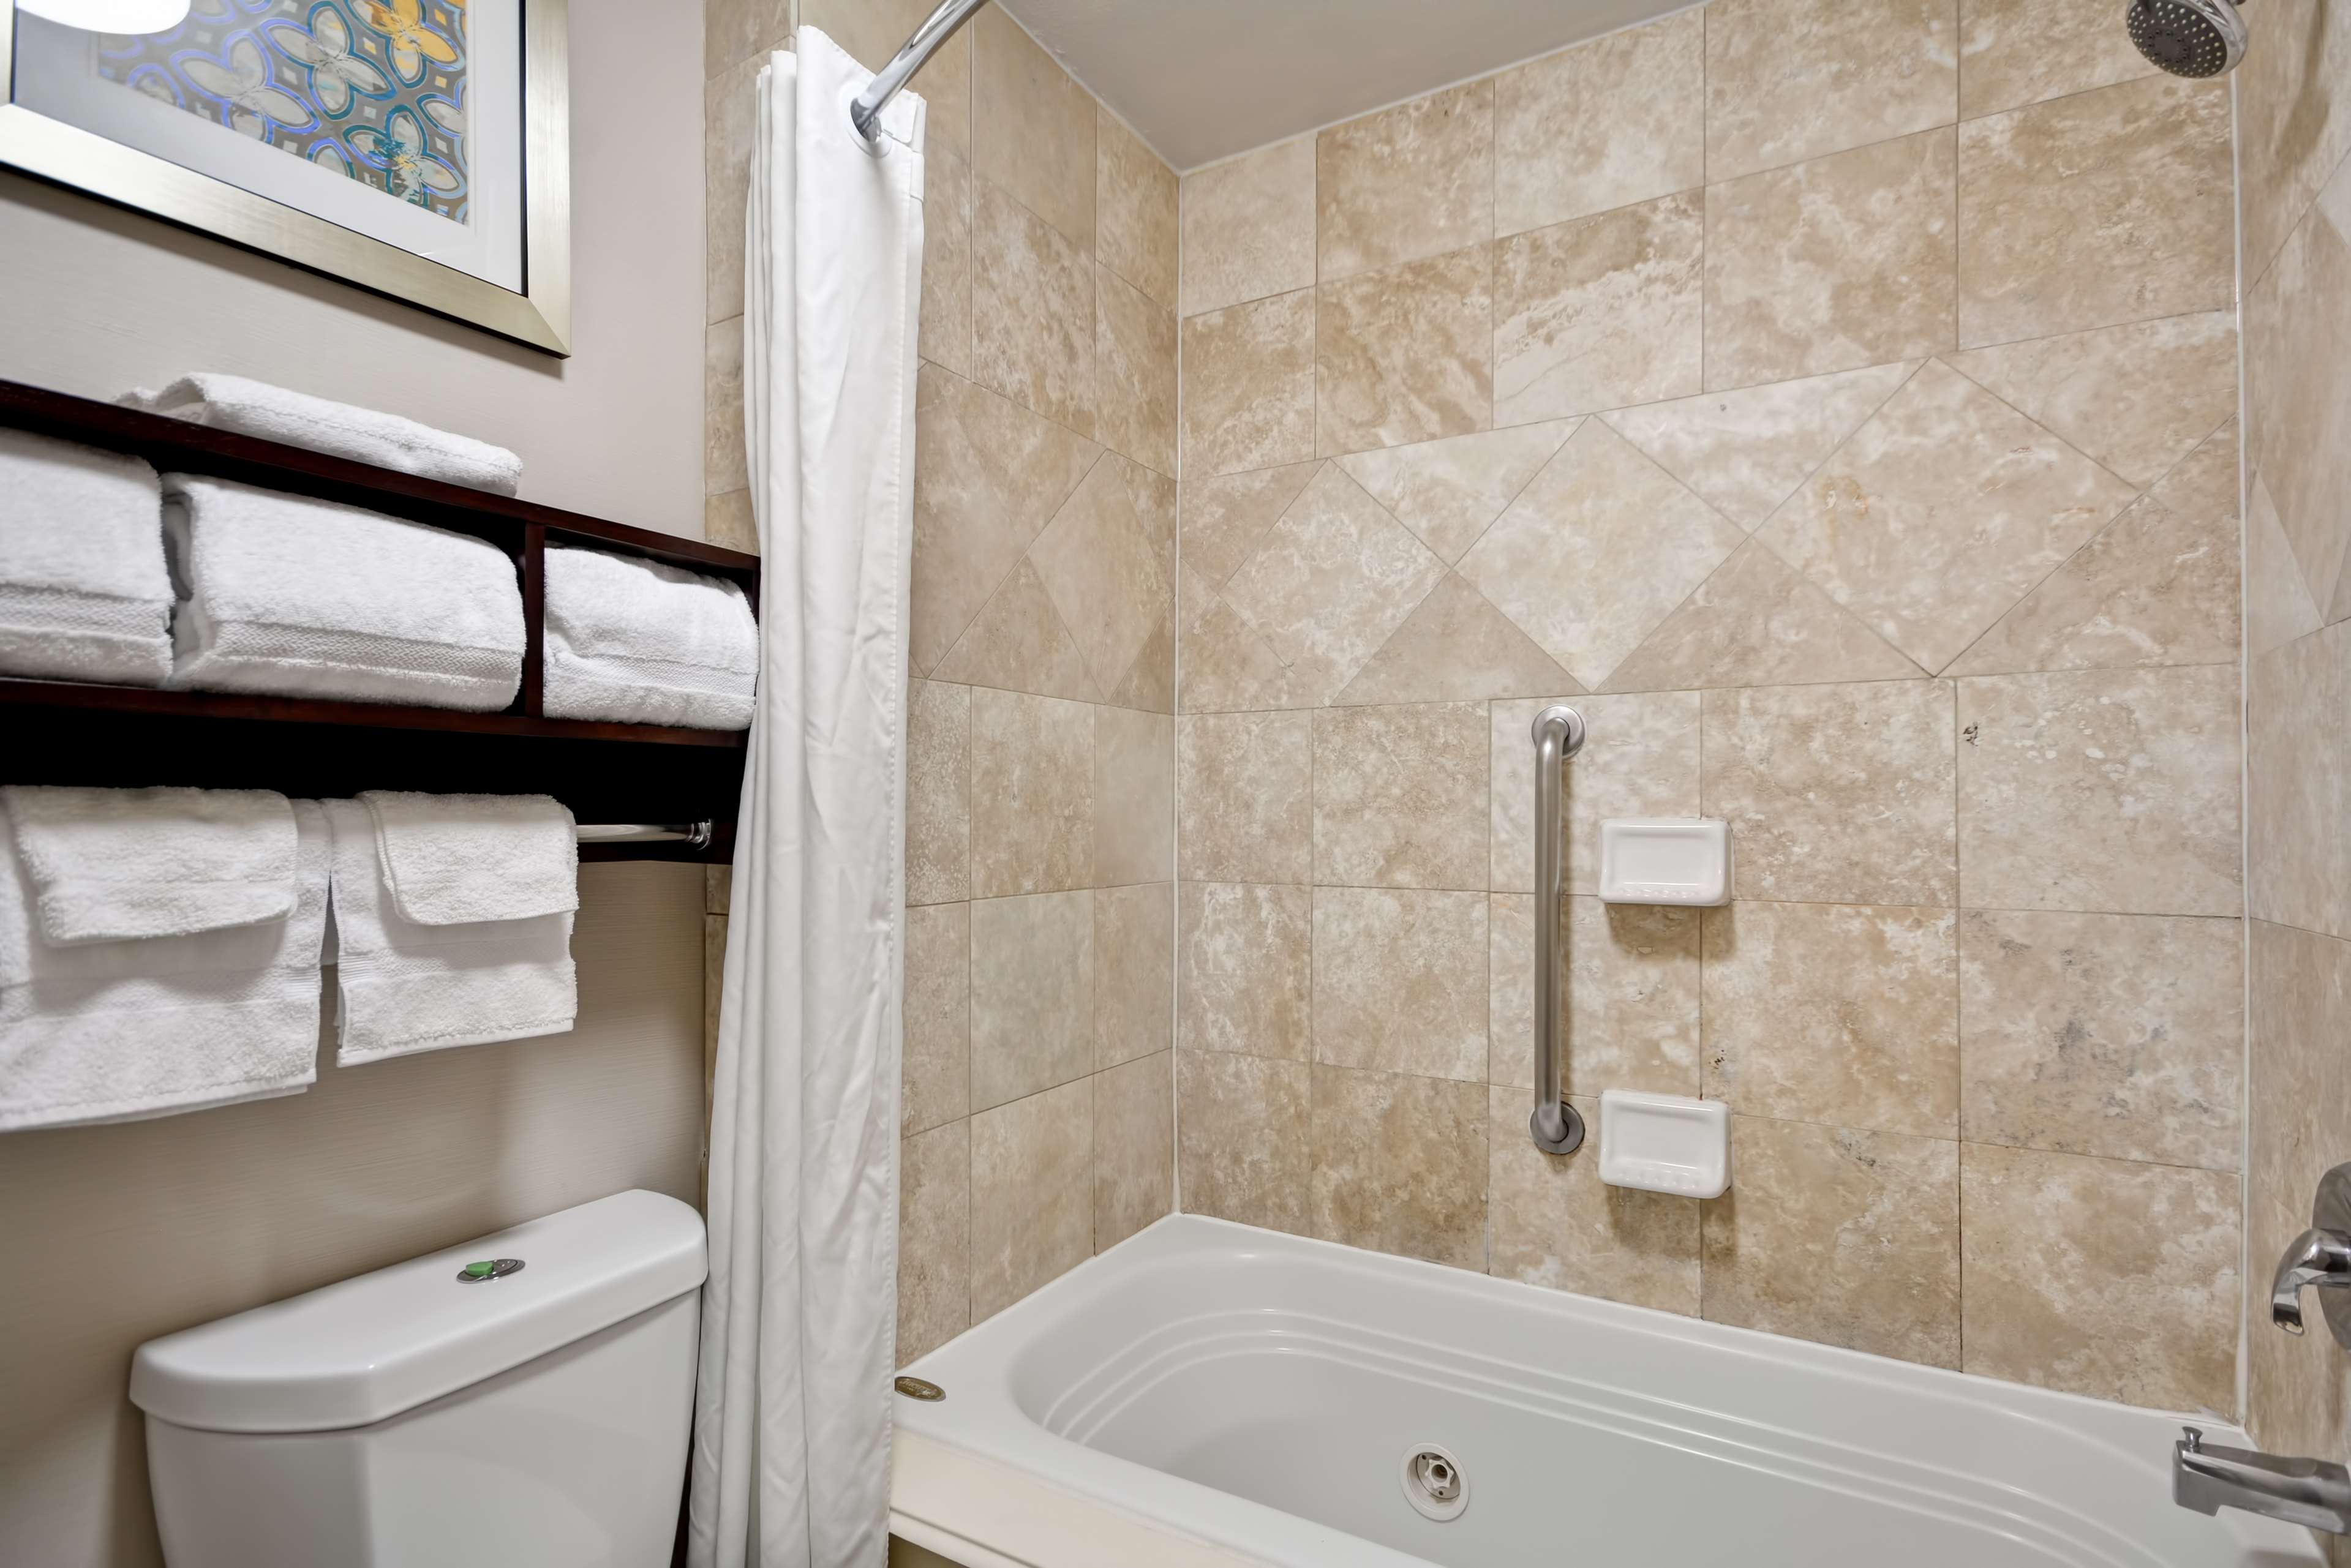 Homewood Suites by Hilton Dallas-Lewisville image 39